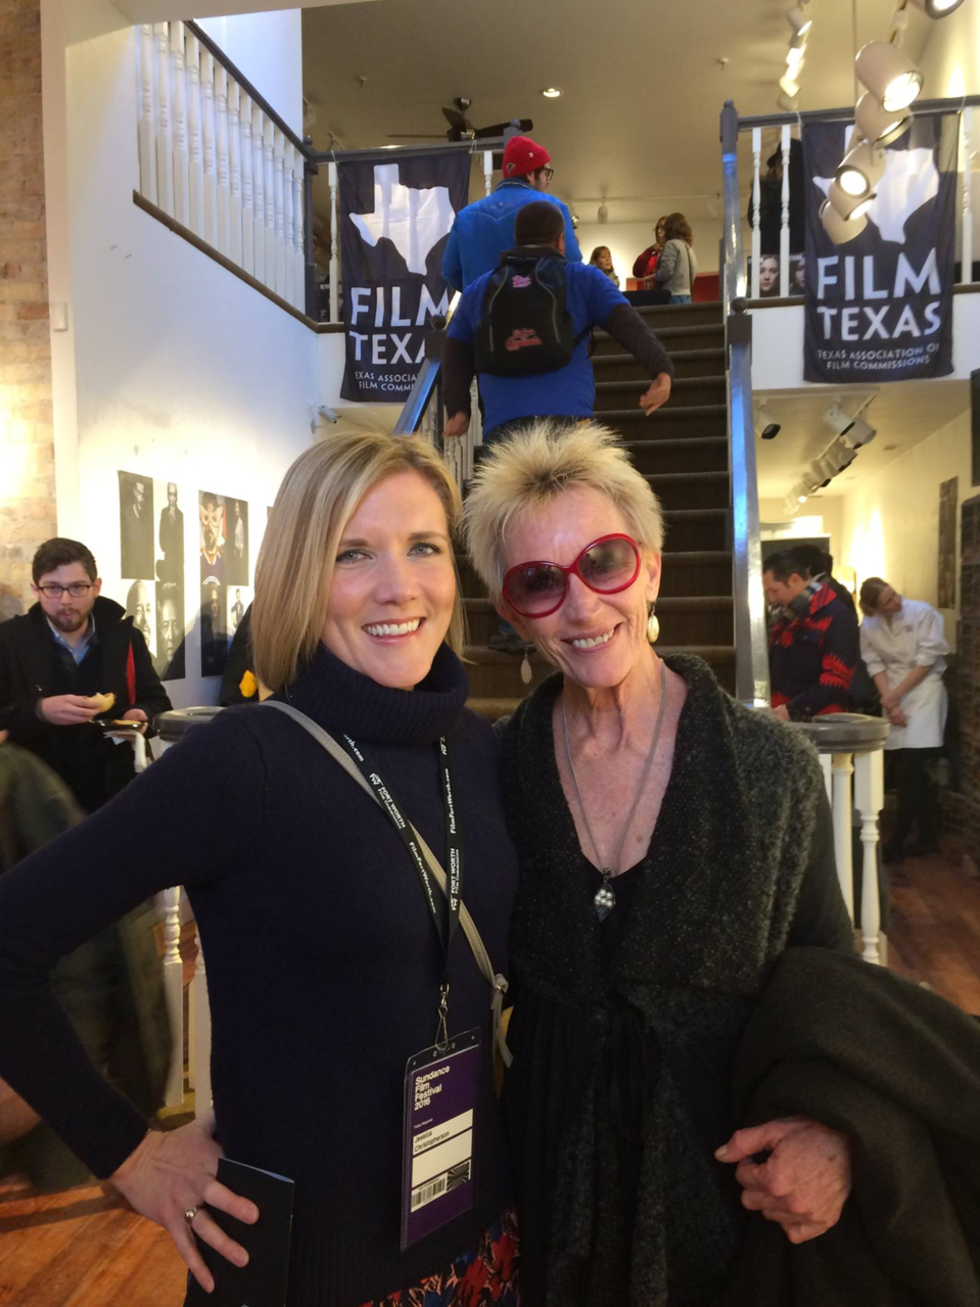 Jessica Christopherson, Deborah Grotfeldt at Film Texas reception at Sundance Film Festival